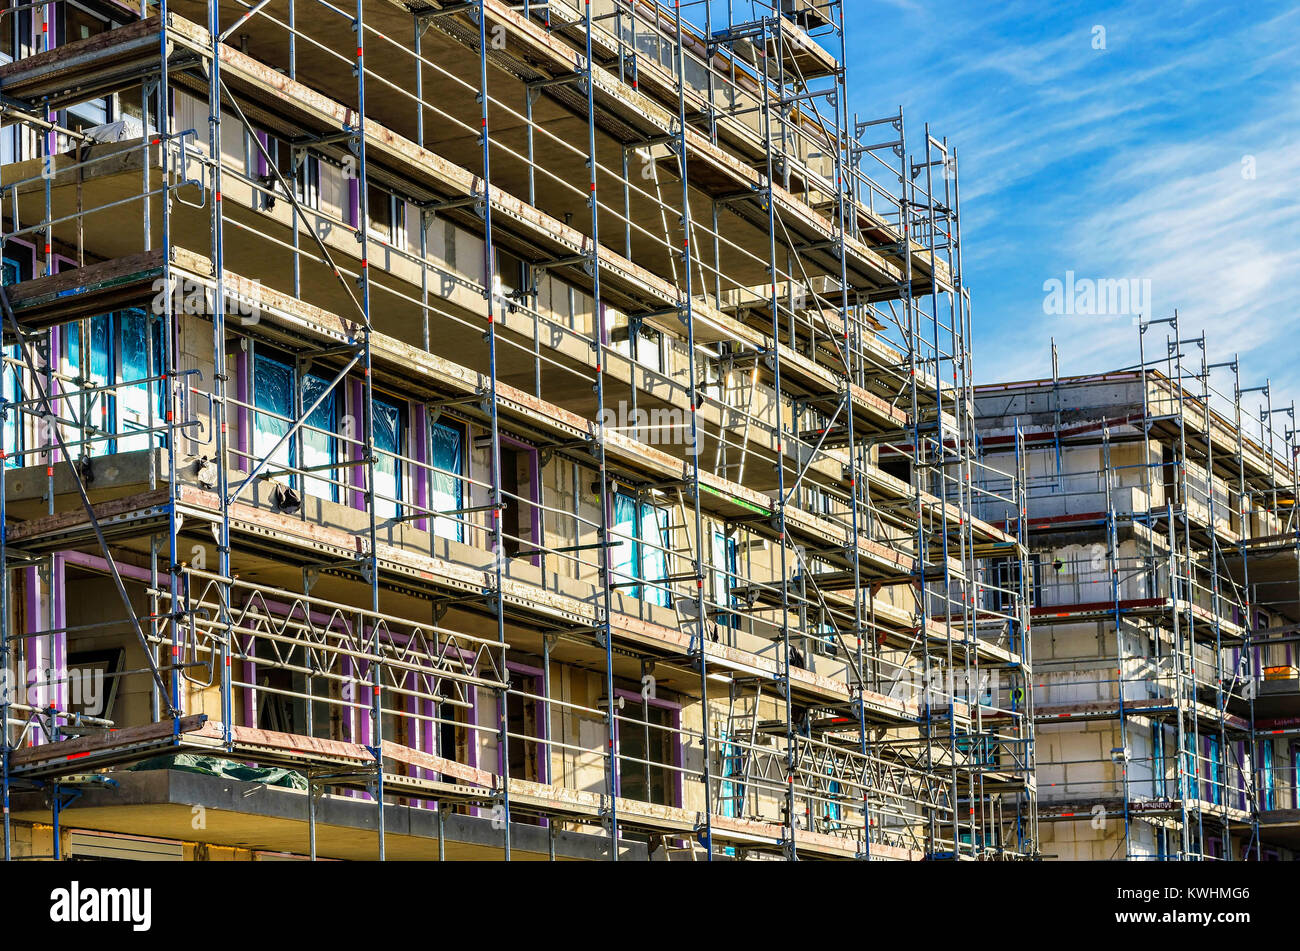 Publicly promoted house building in Hamburg, Germany, Öffentlich gefoerderter Wohnungsbau in Hamburg, Deutschland - Stock Image